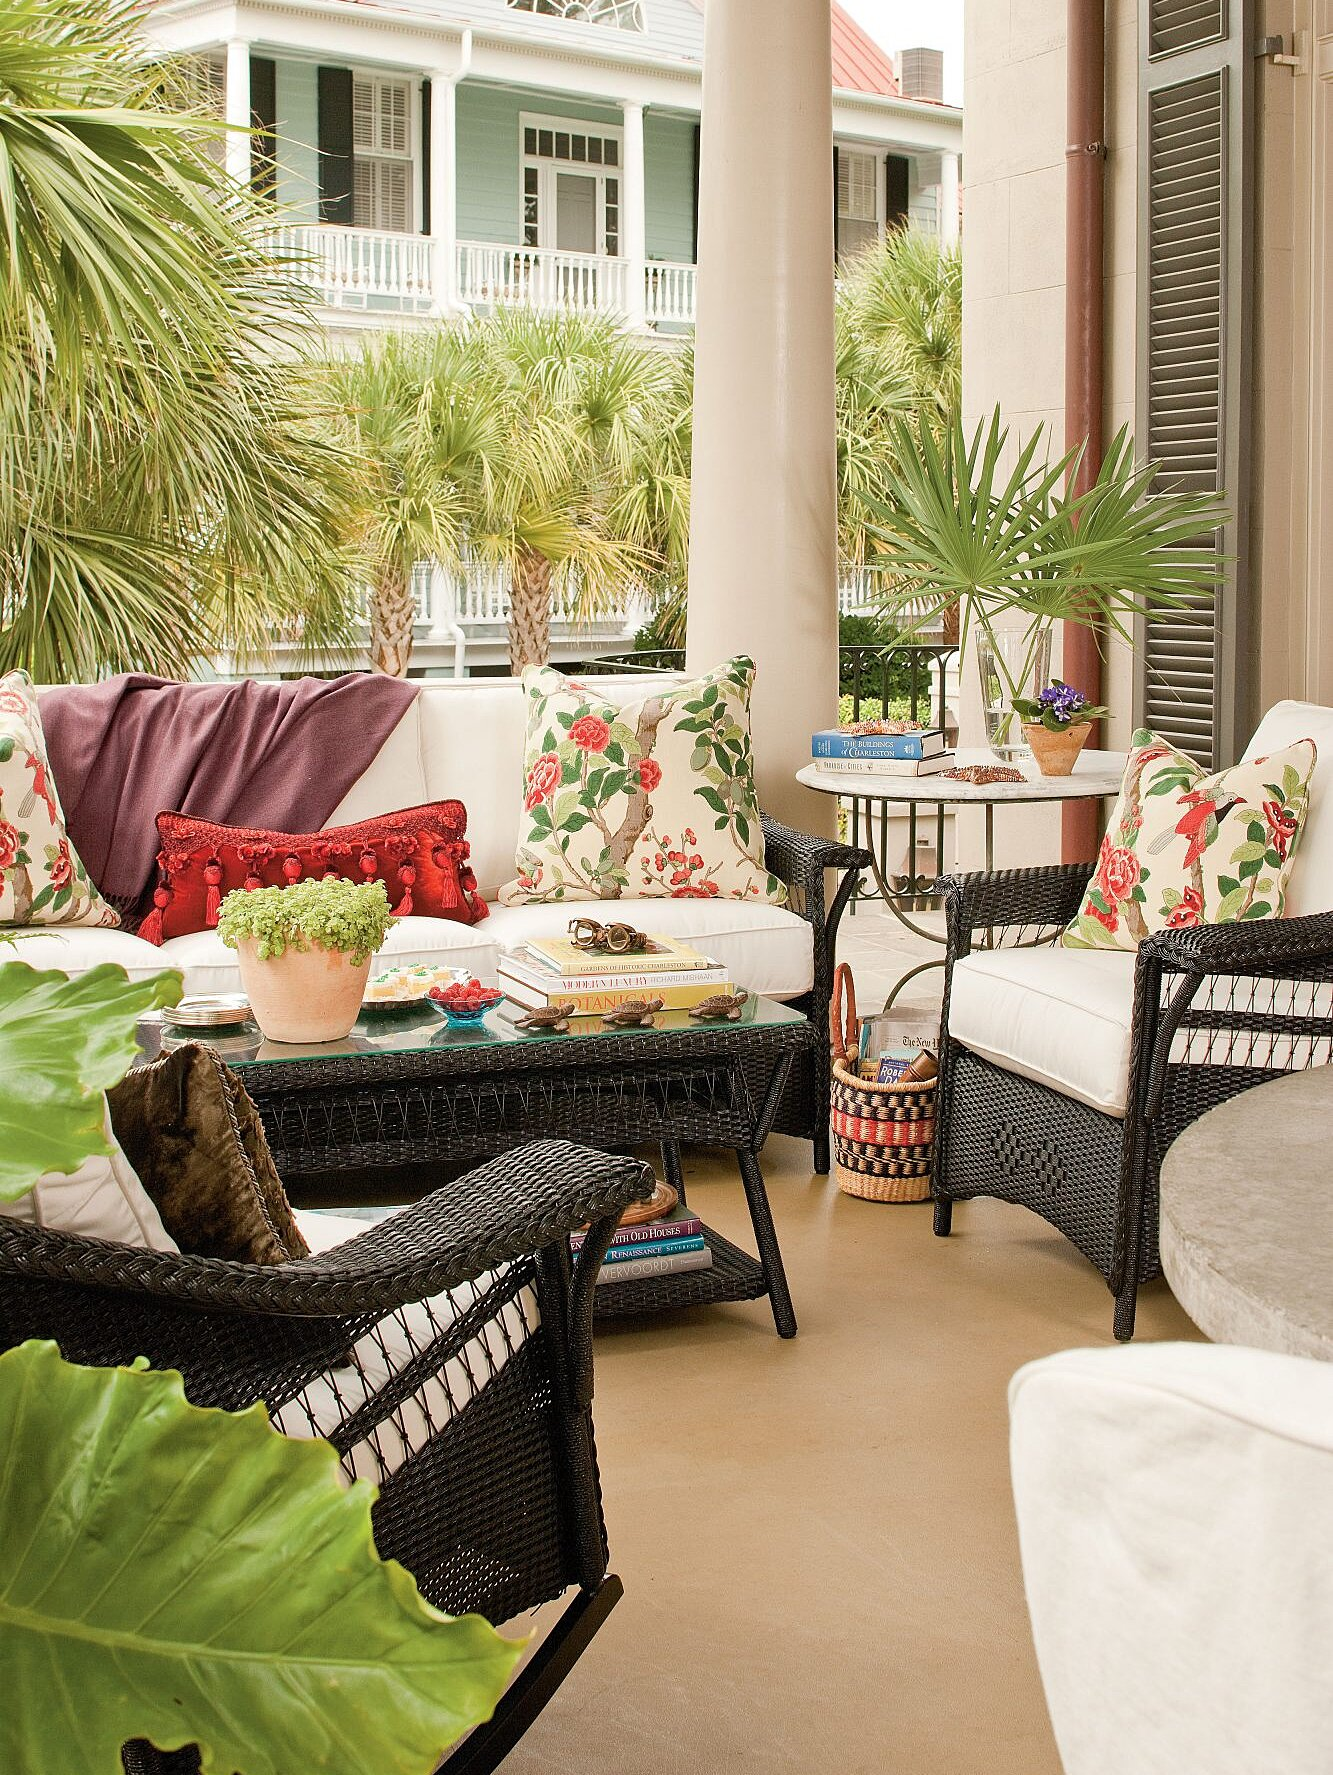 80 Porch And Patio Design Ideas You Ll Love All Season Southern Living